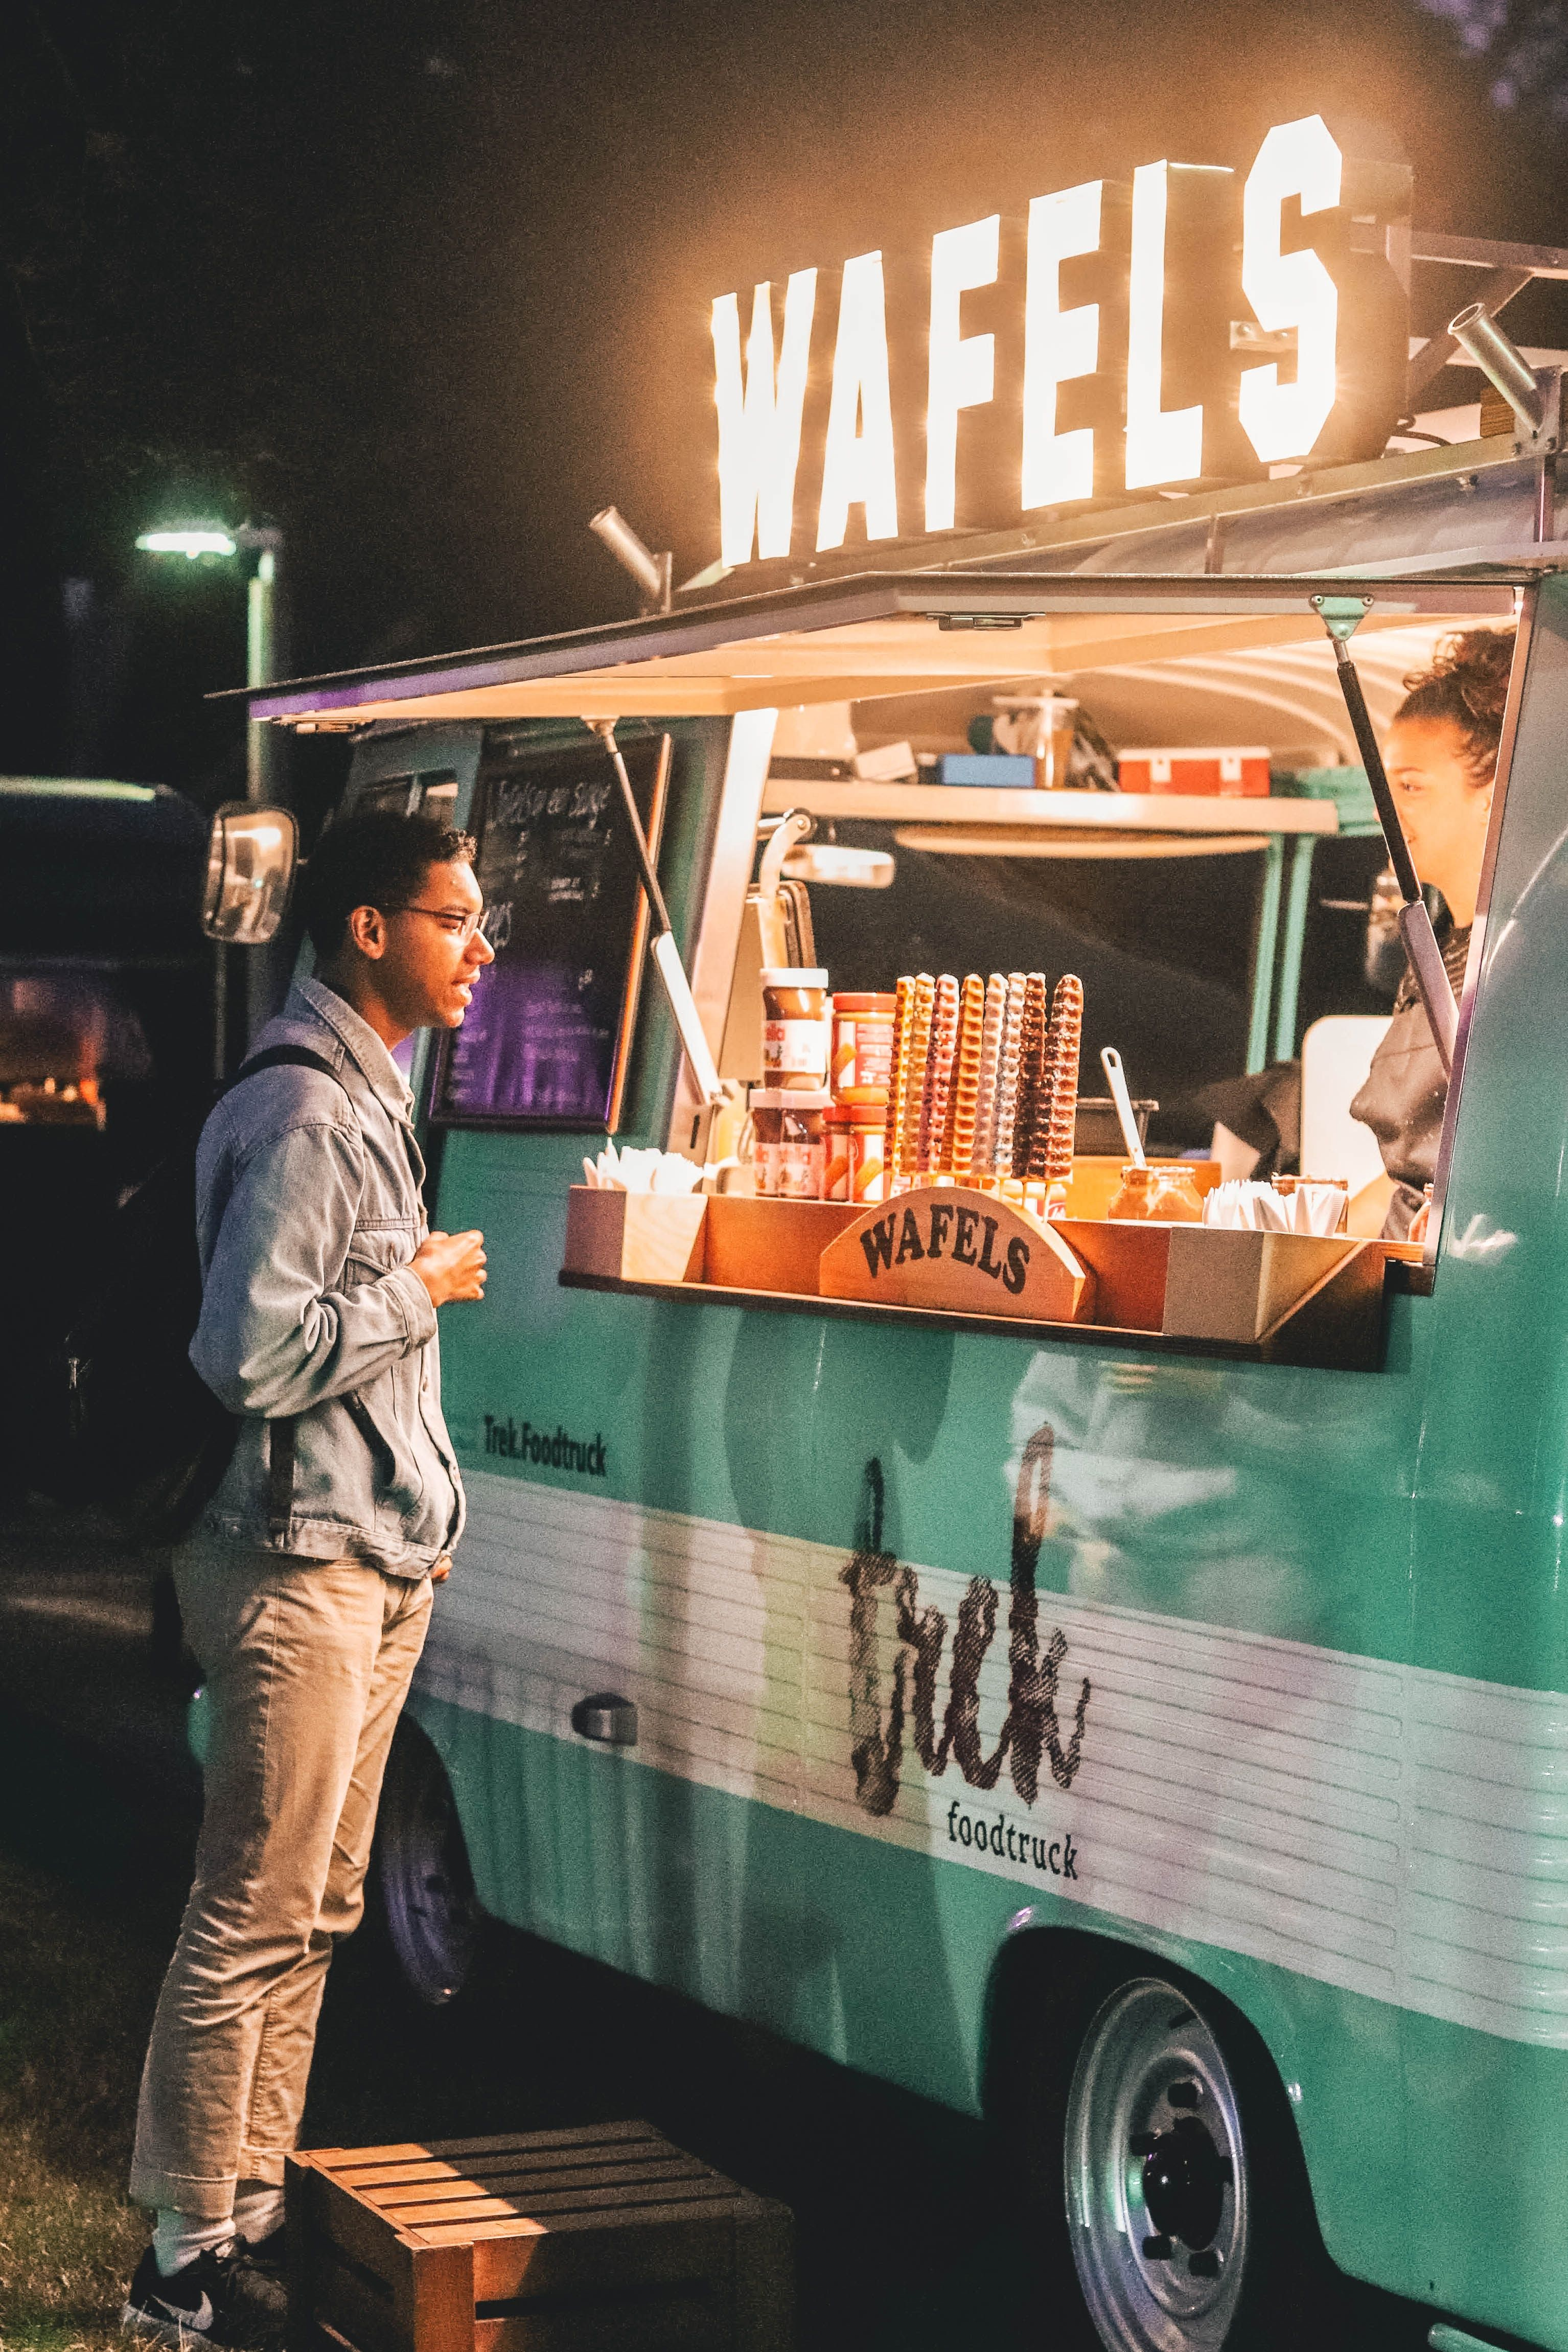 Man in front of a food truck